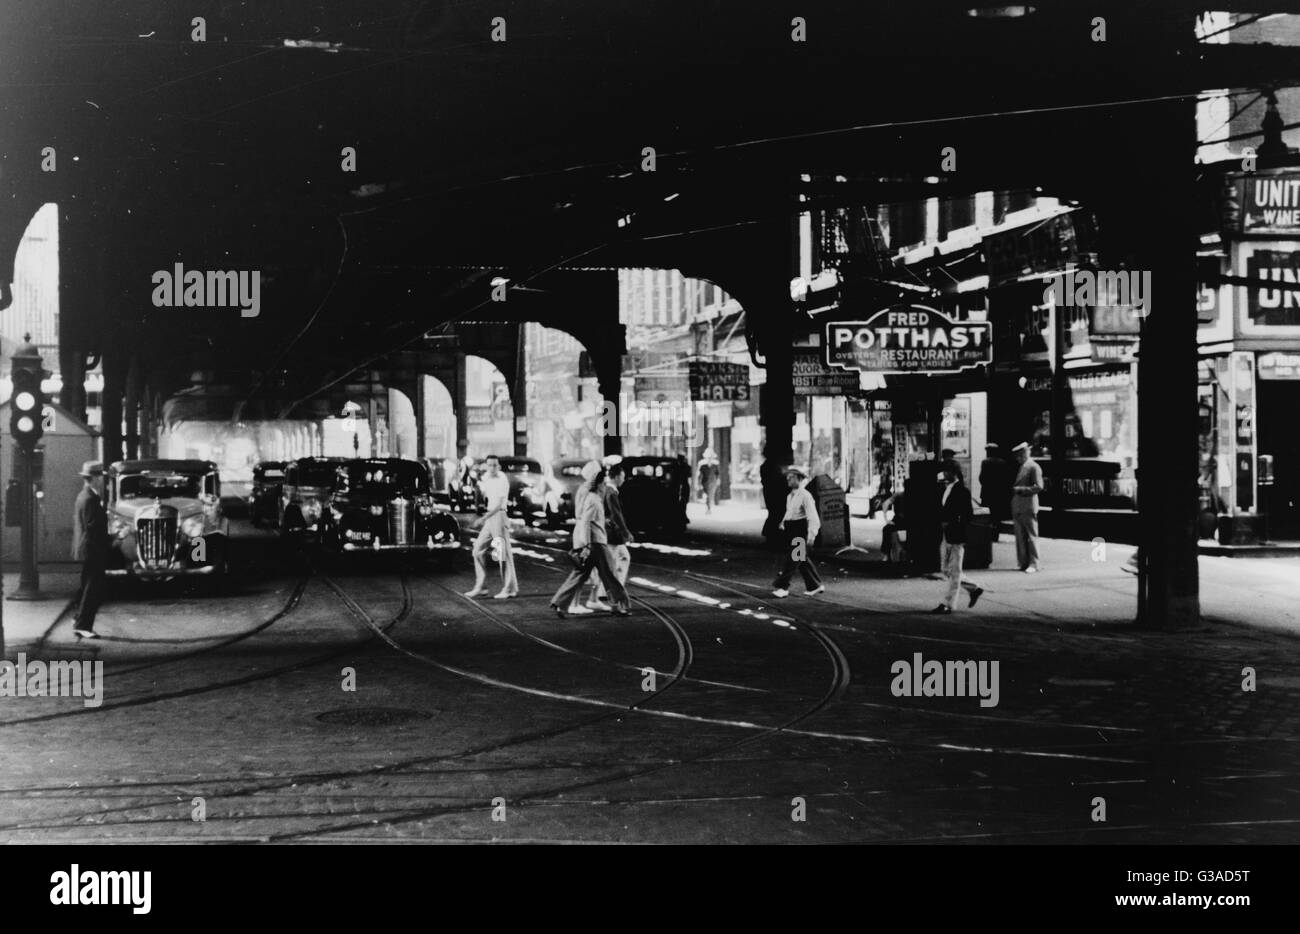 Under the elevated tracks. Chicago, Illinois. Date 1940 July. - Stock Image